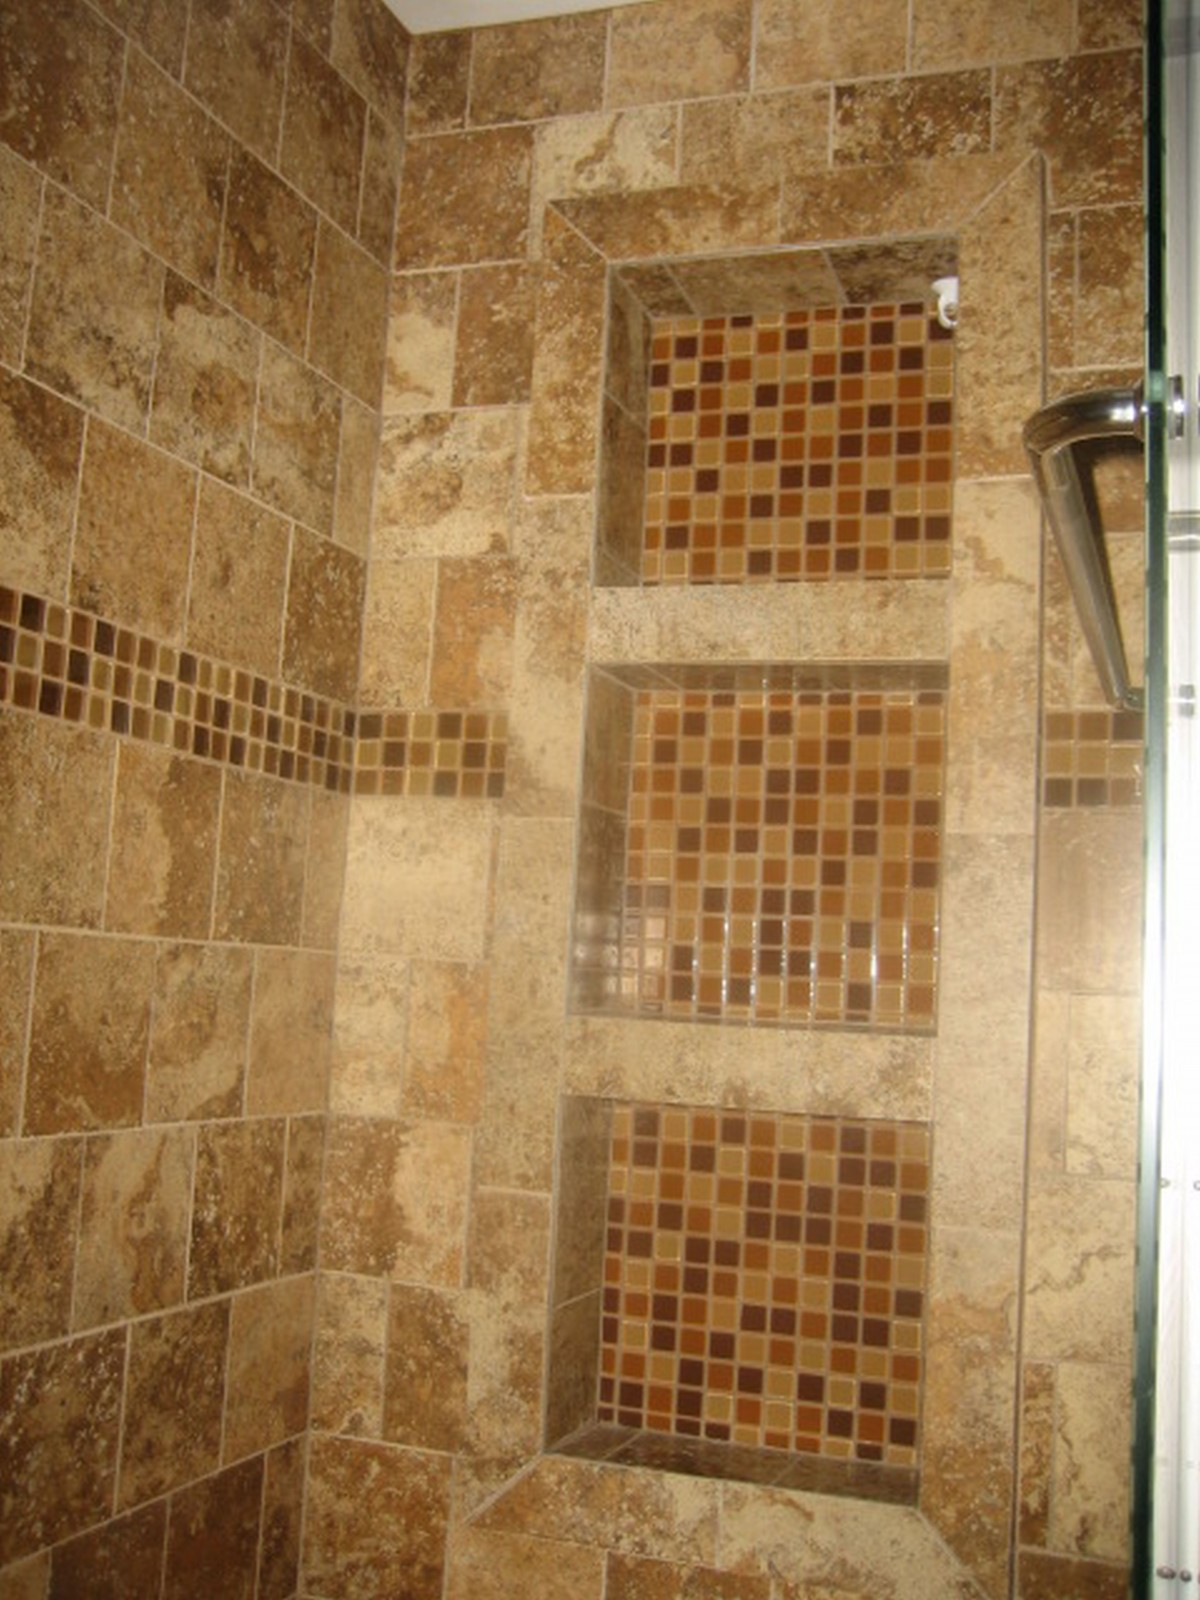 tiled bathrooms ideas showers - 28 images - tiled showers stroovi ...